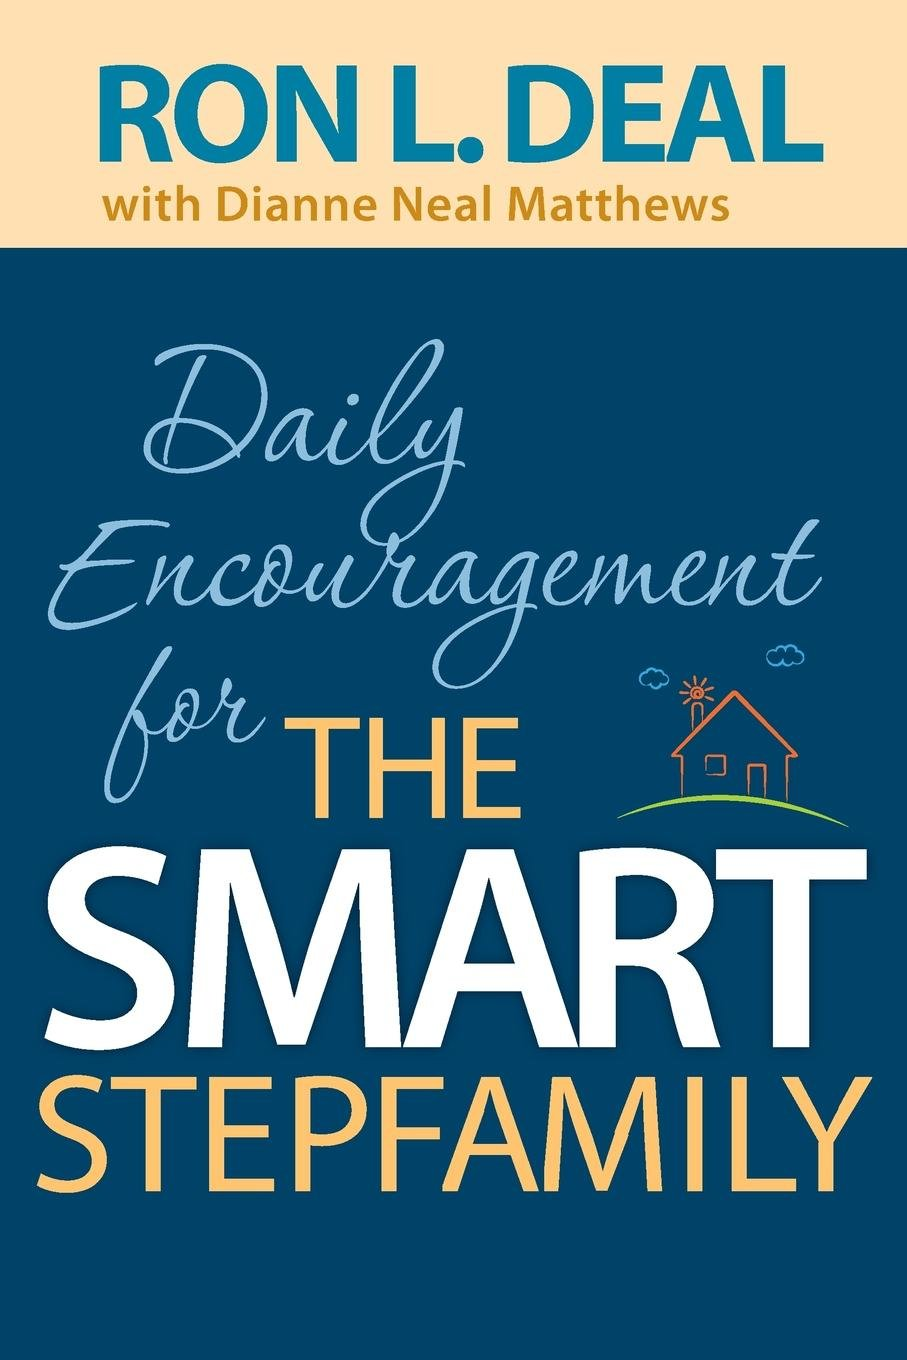 Daily Encouragement for the Smart Stepfamily: Ron L. Deal, Dianne Neal  Matthews: 9780764230479: Amazon.com: Books